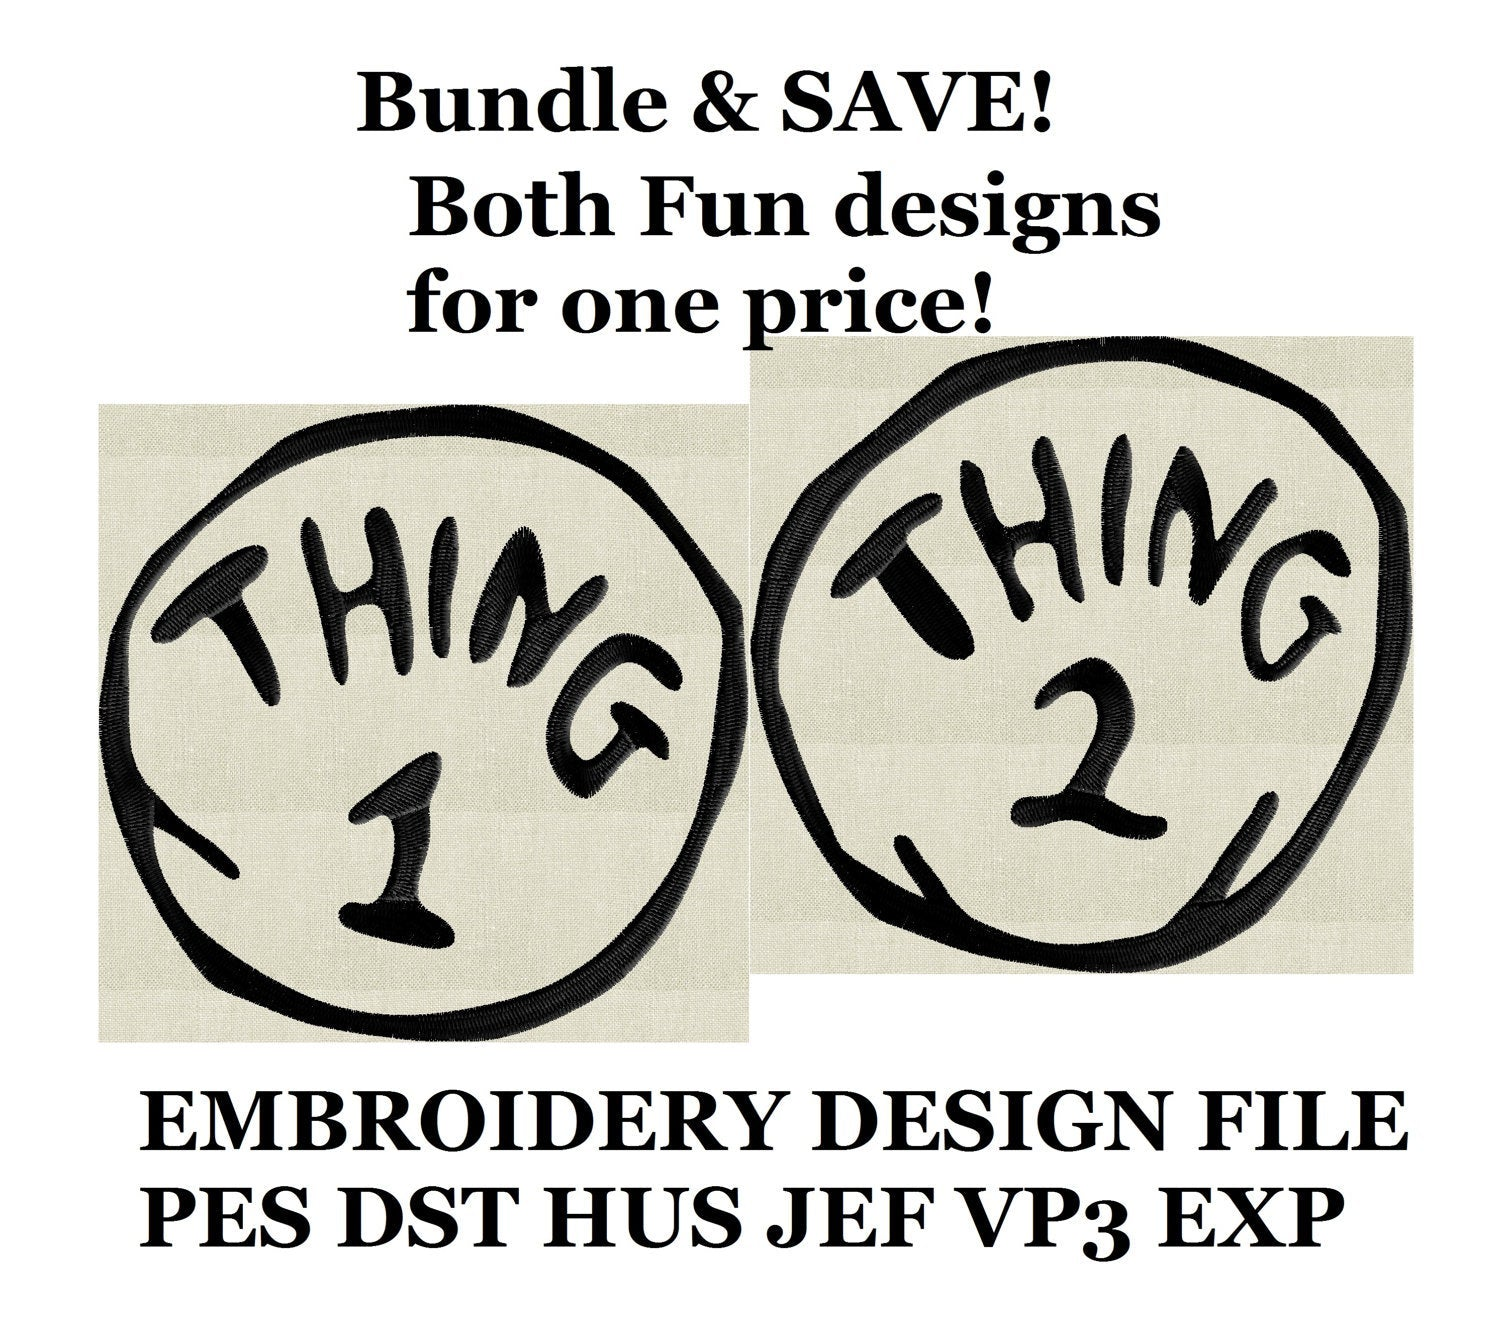 BUNDLE! Thing One & Thing 2 Embroidery DESIGN FILE - Instant download - Exp Vp3 Dst Hus Jef Pes formats - 2 sizes